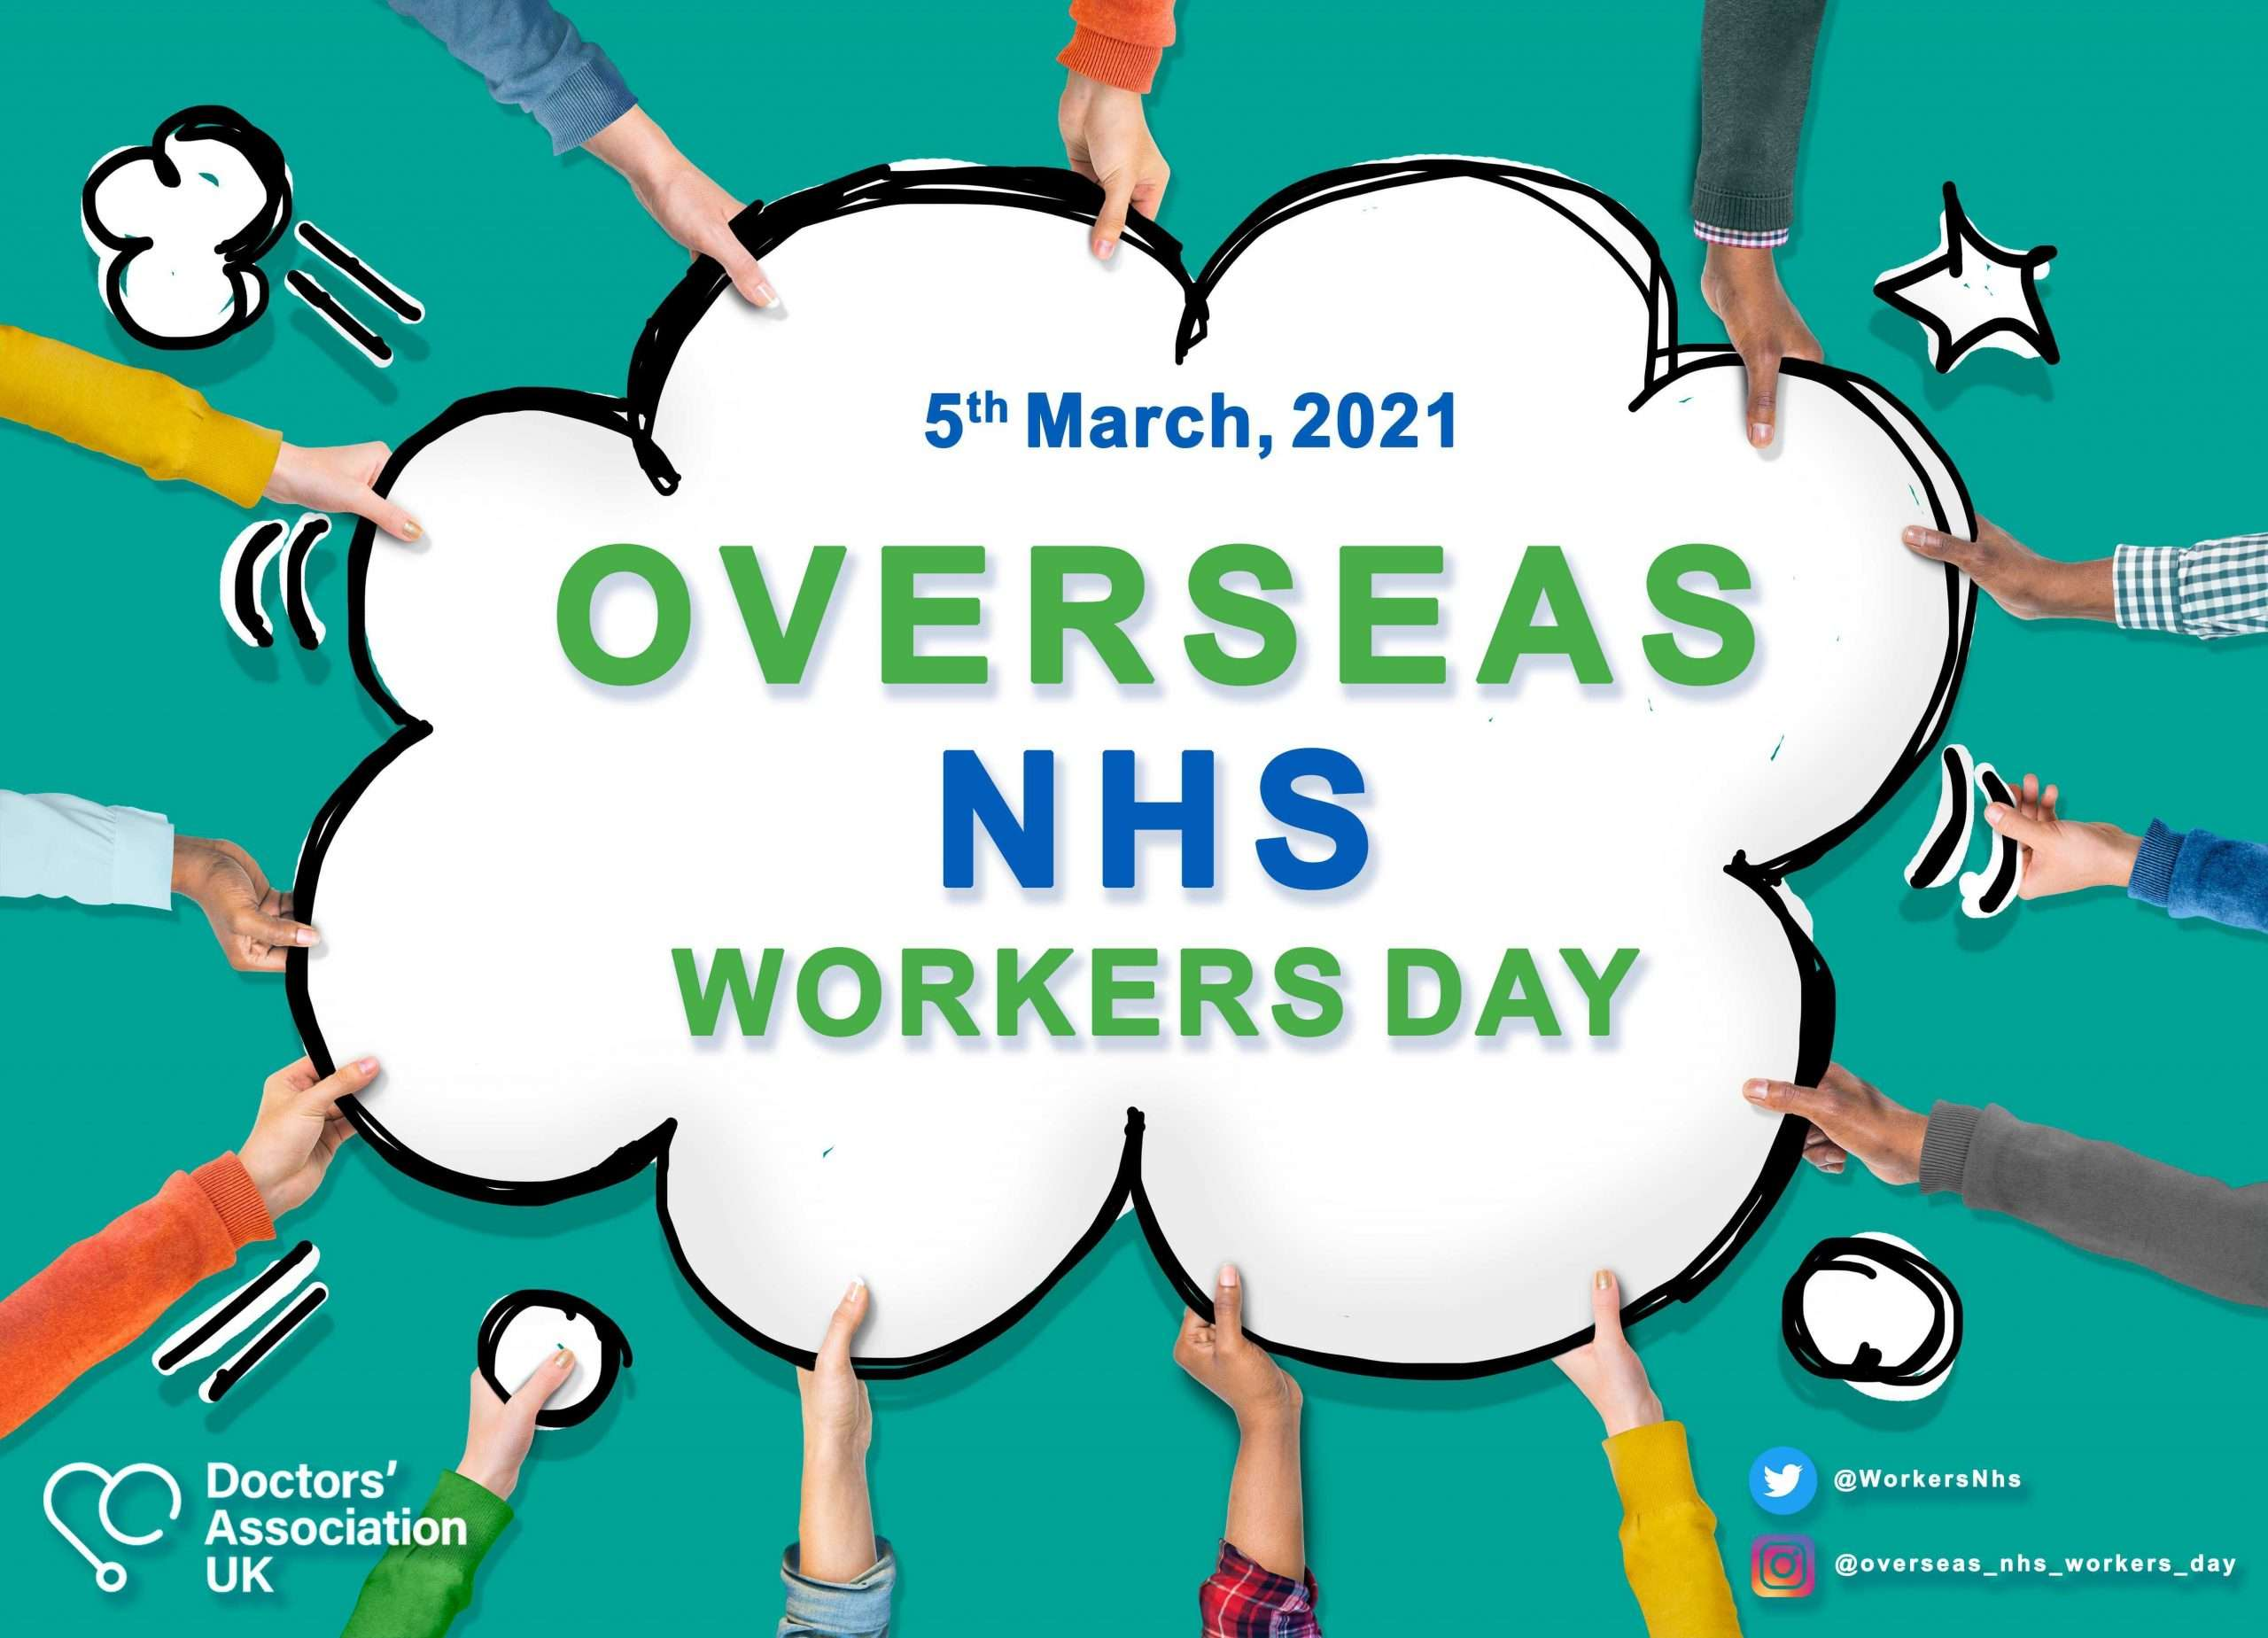 The International Health service support DAUK's Overseas NHS Workers Day